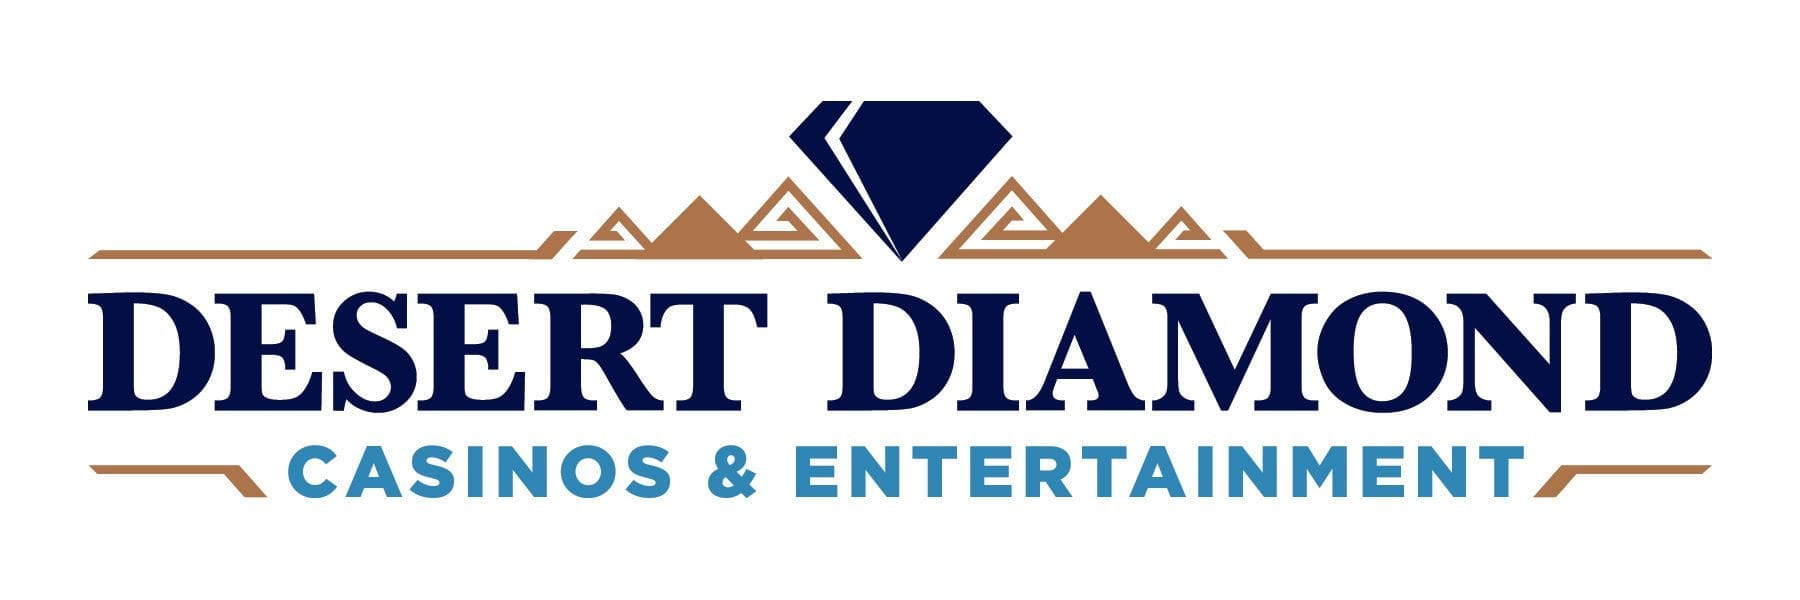 Desert Diamond Casino logo